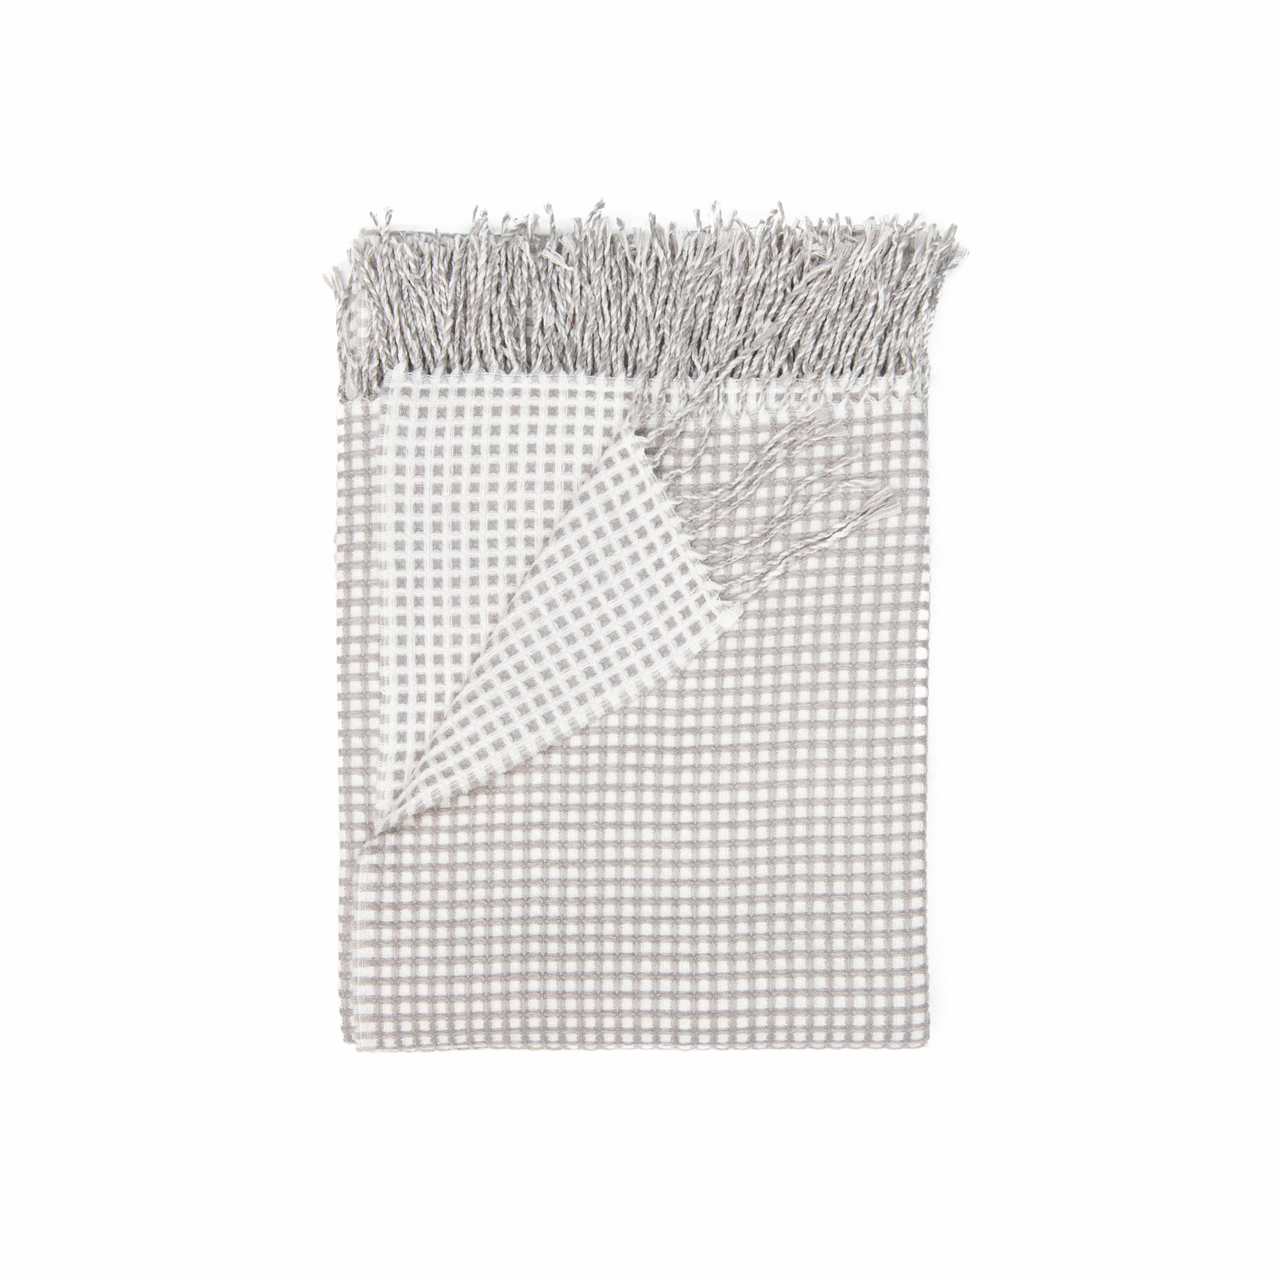 In 2 Linen Waffle Knitted Throw Rug   Natural & Linen